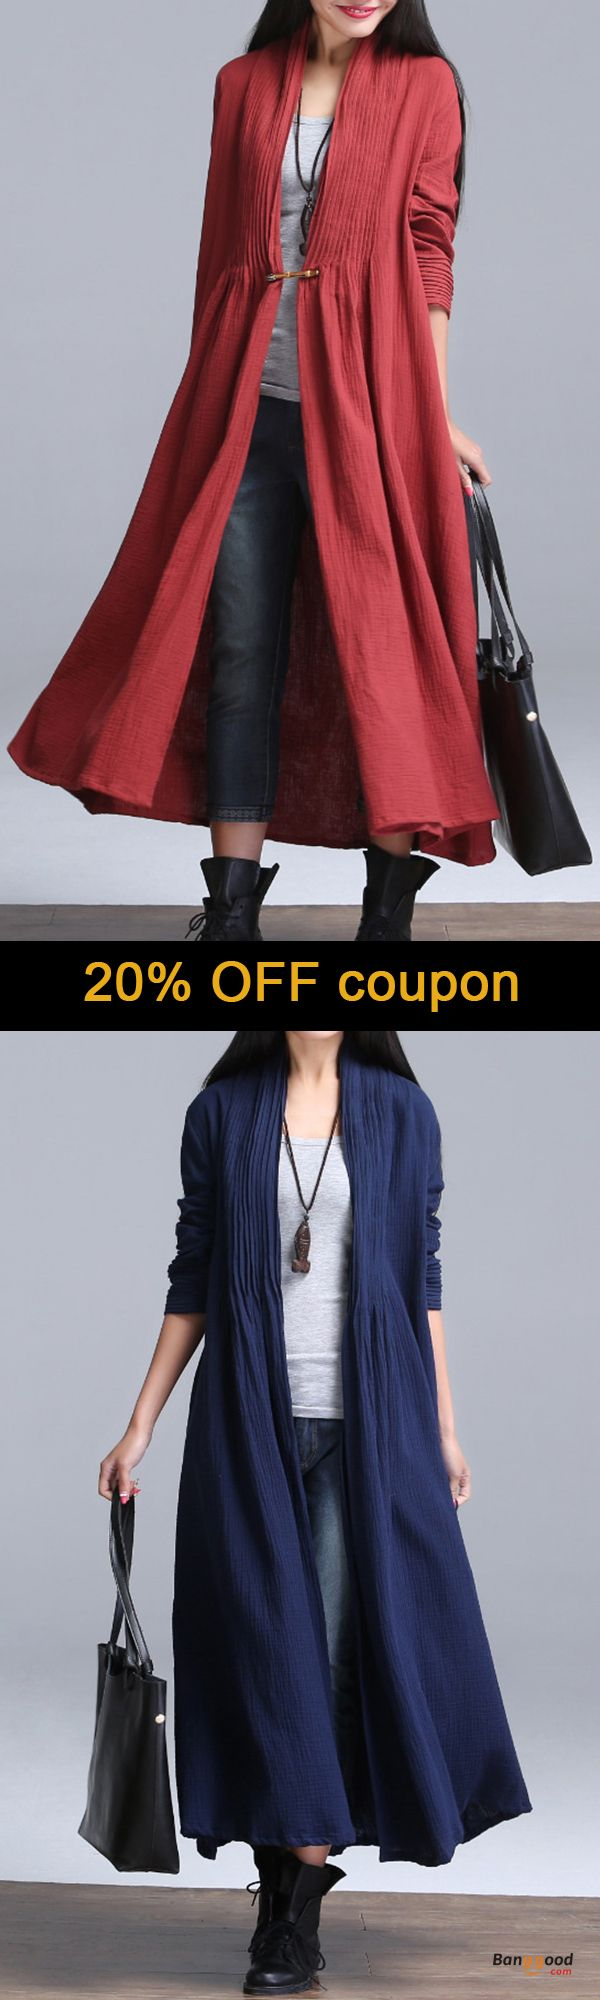 US$39.99 + Free shipping. Size: S~L. Fall in love with fashion and casual style! Plus Size Vintage Women Solid Ruffles Long Sleeve Long Coat Cardigan.